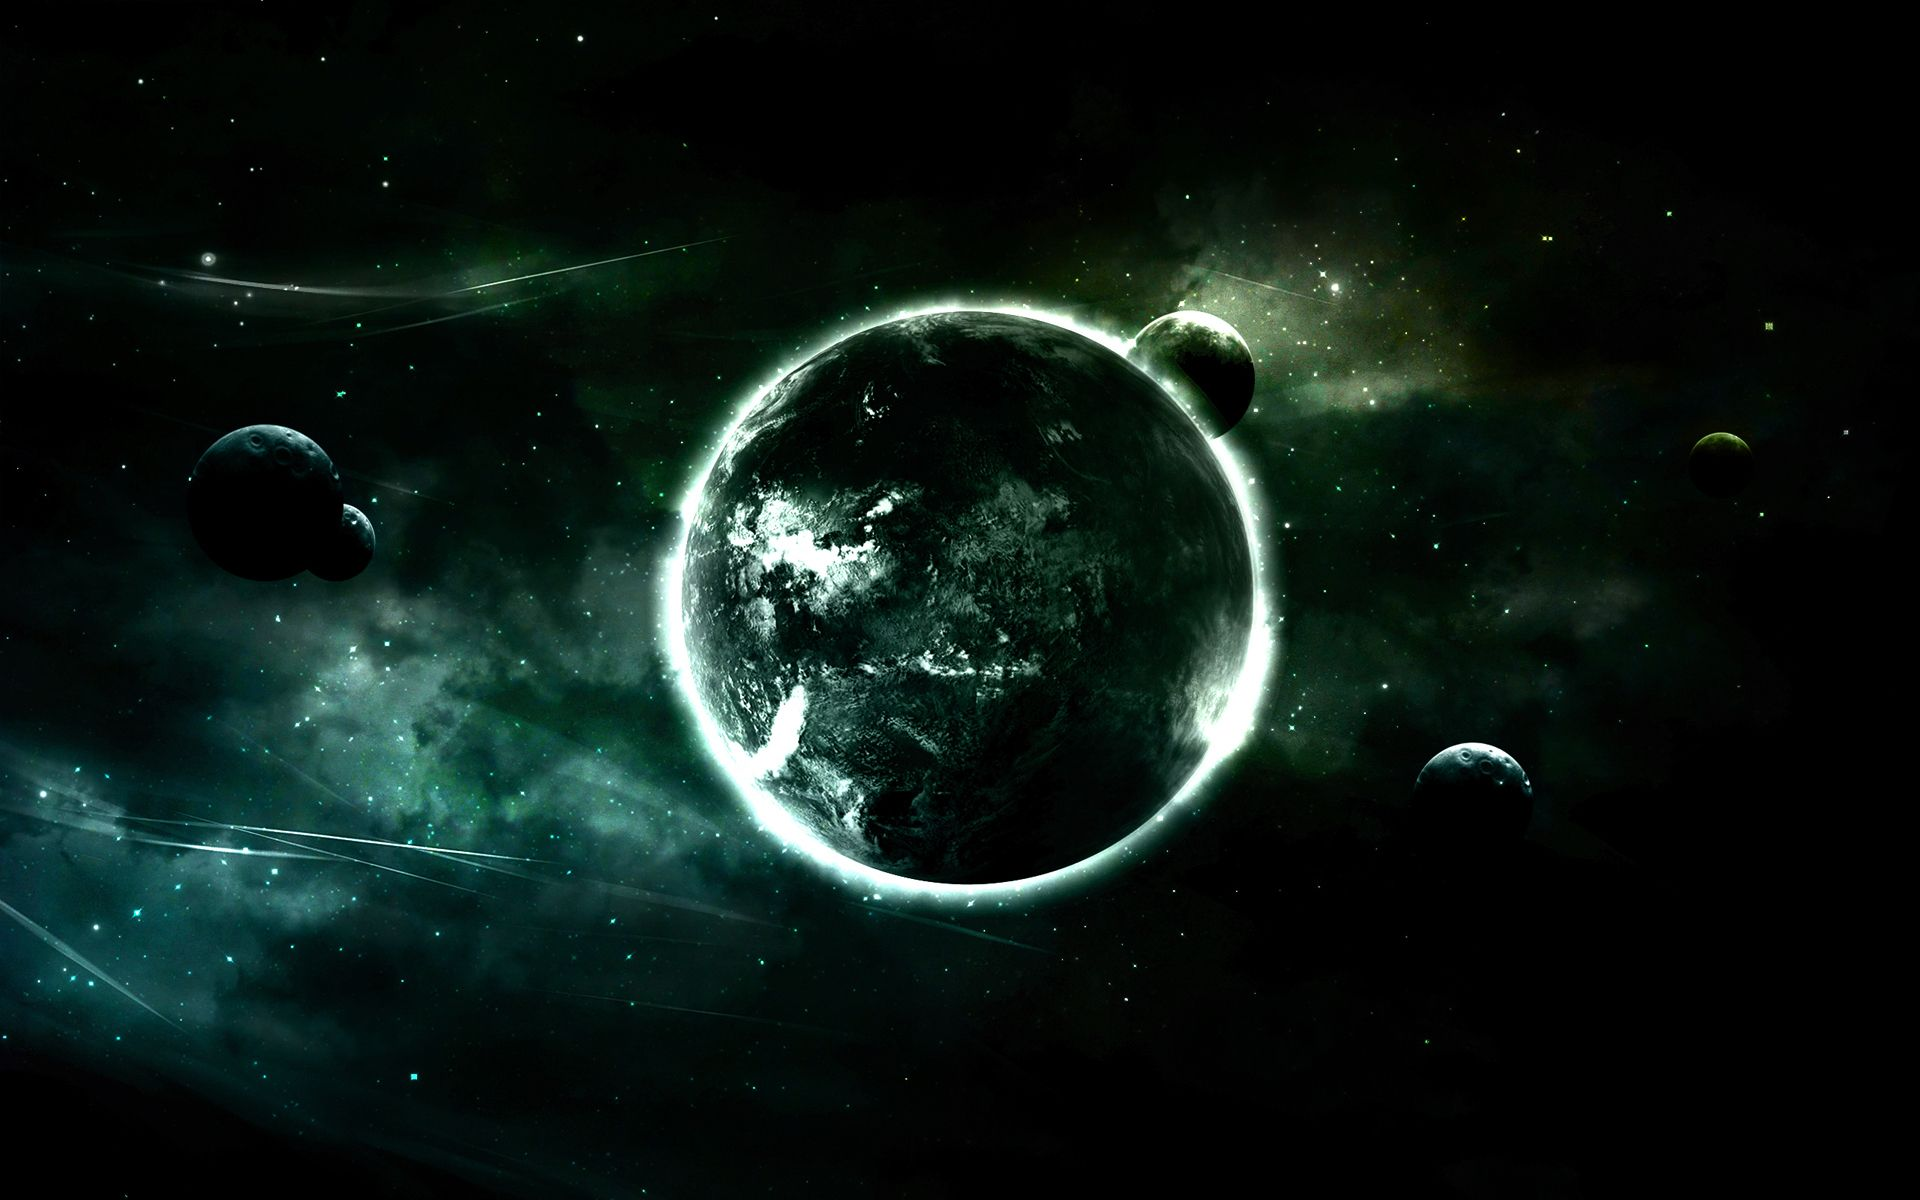 powering a green planet hd wallpapers widescreen x | hd wallpapers